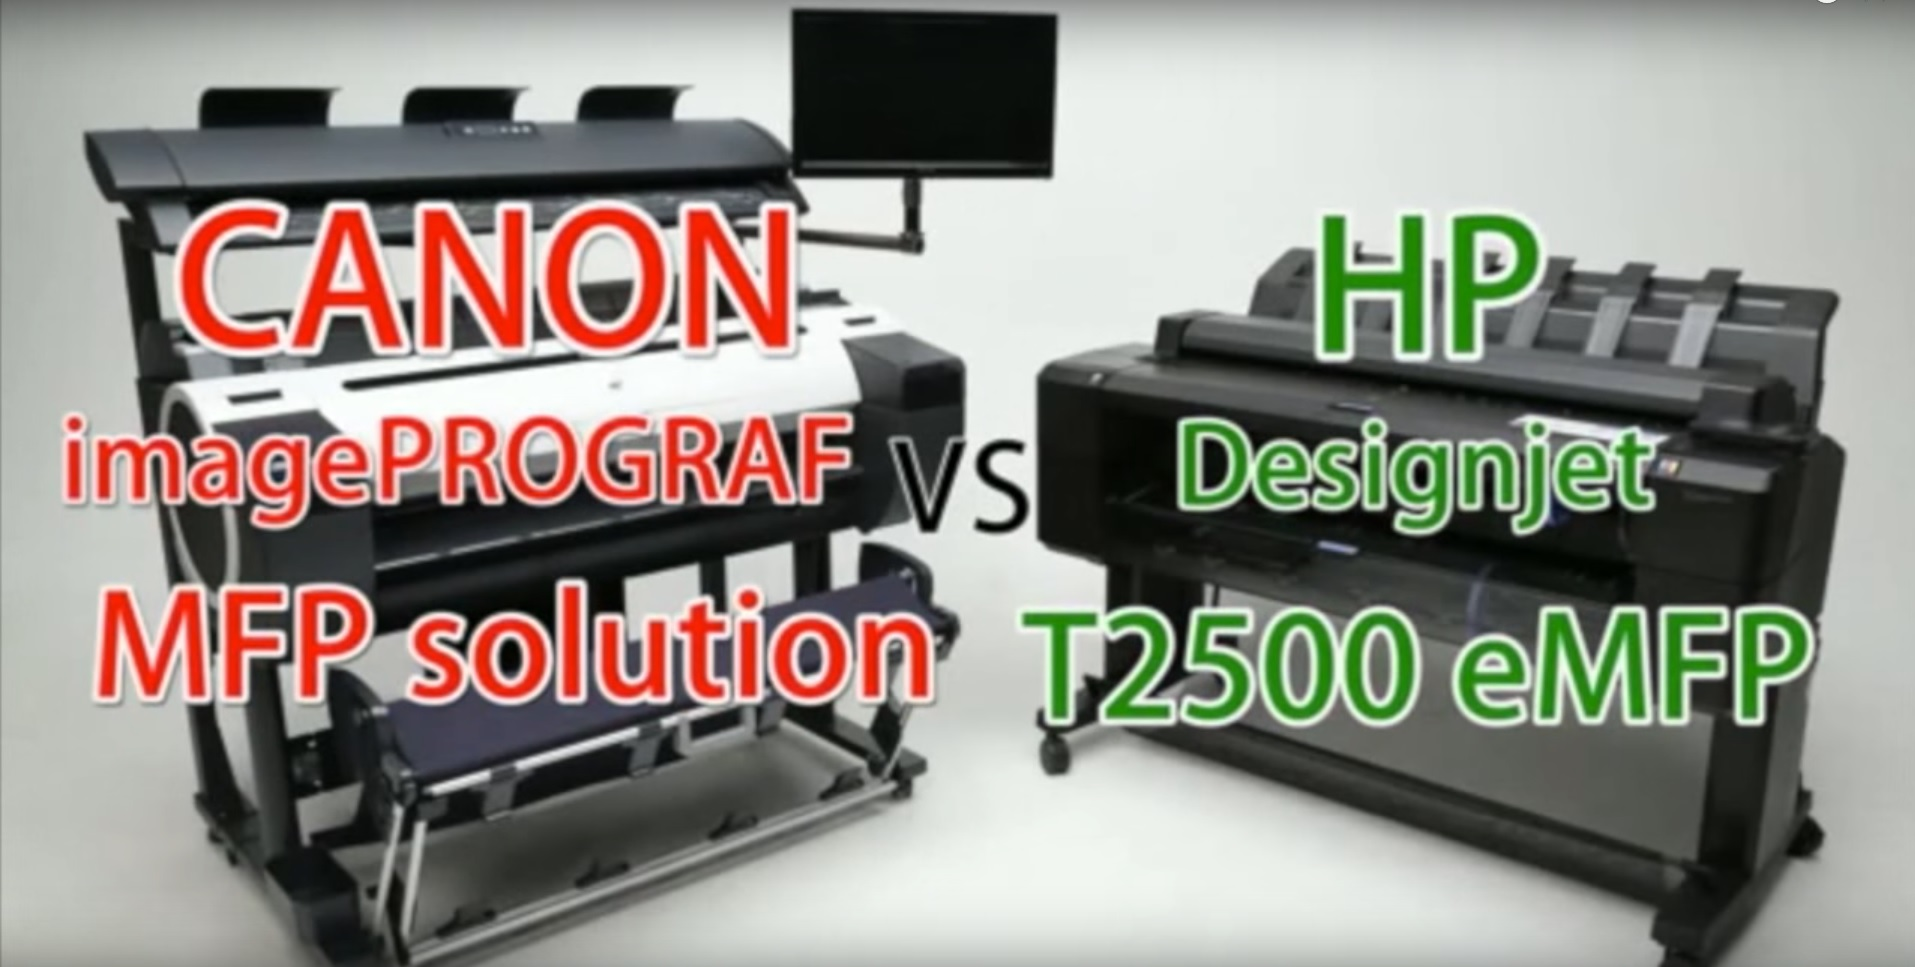 Canon iPF780MFP Vs HP T2500 eMFP graphic